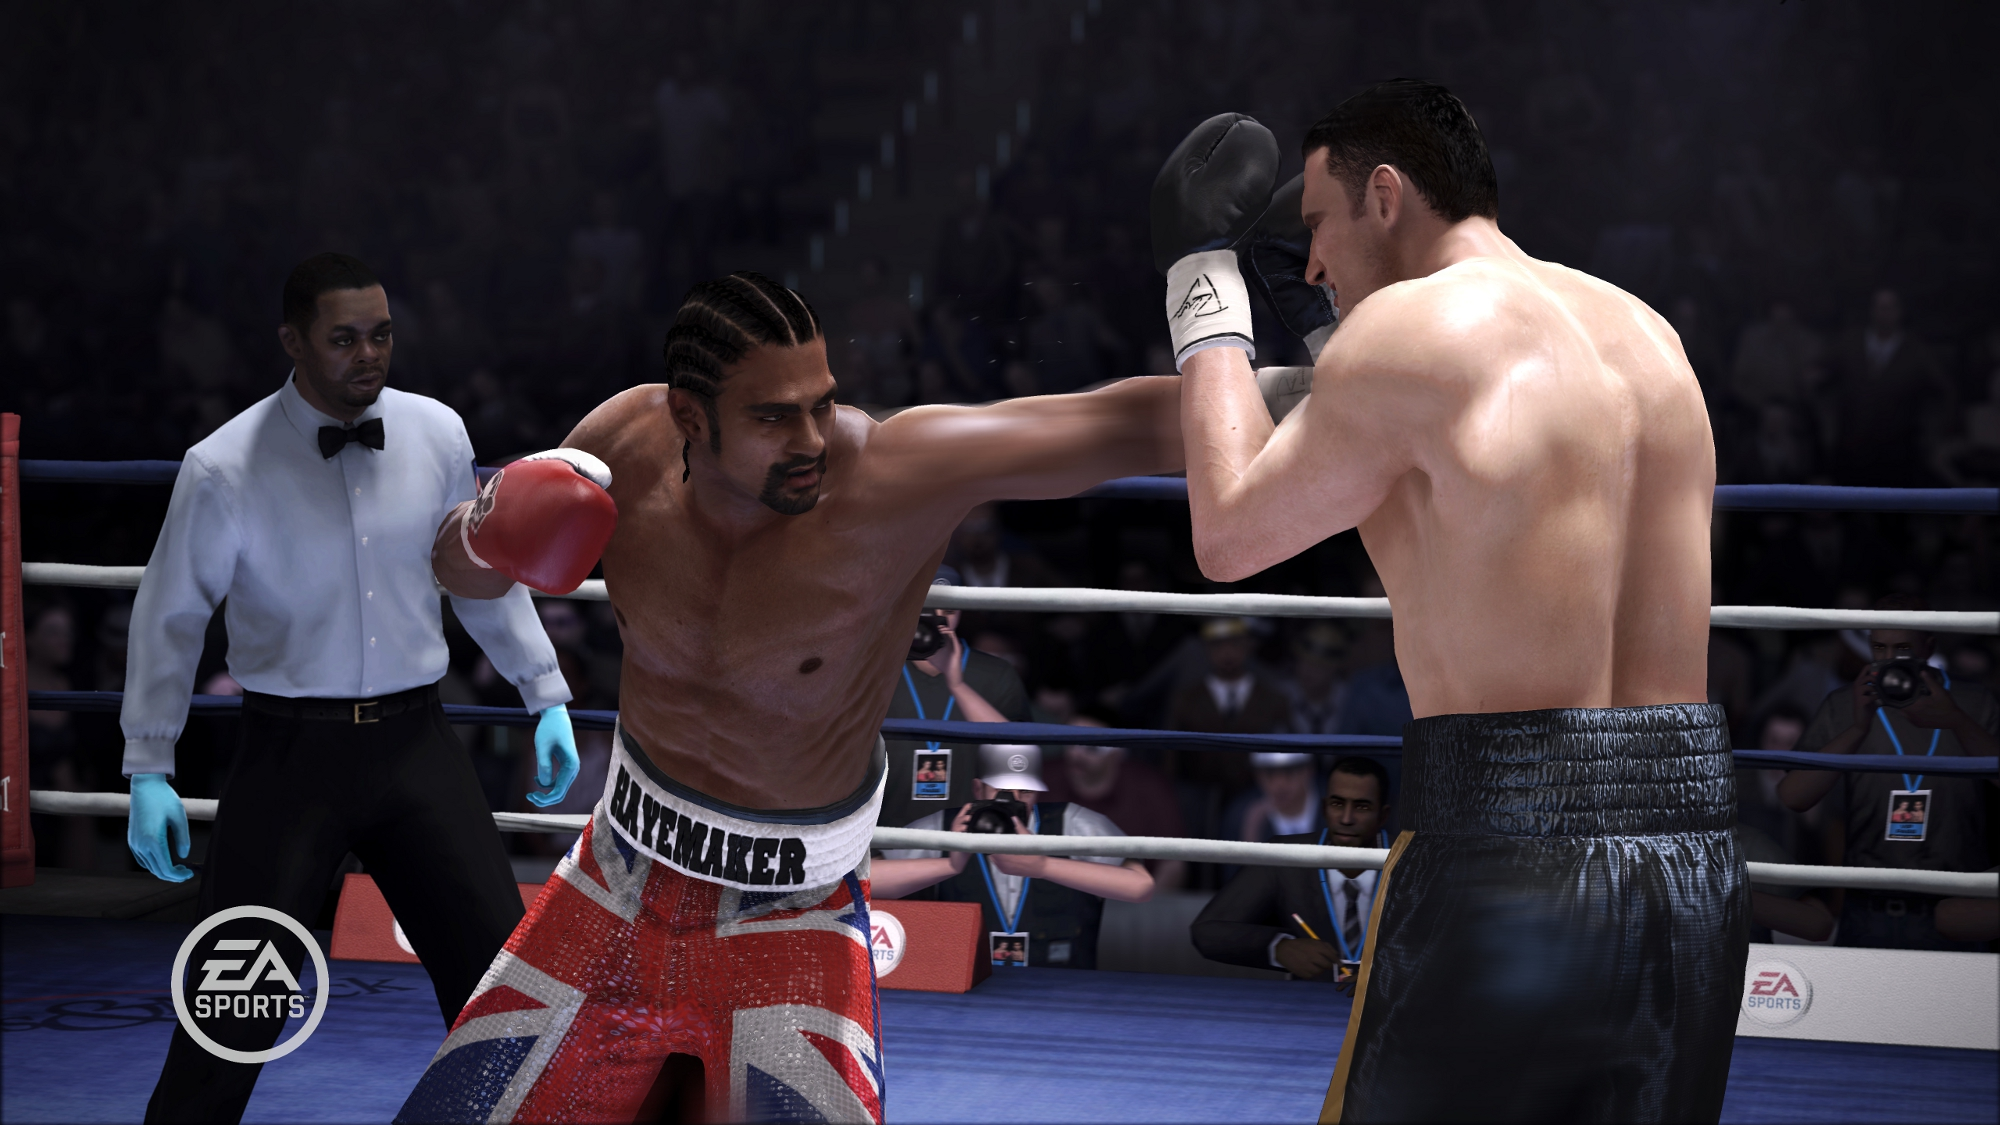 Fight night champion version for pc gamesknit.